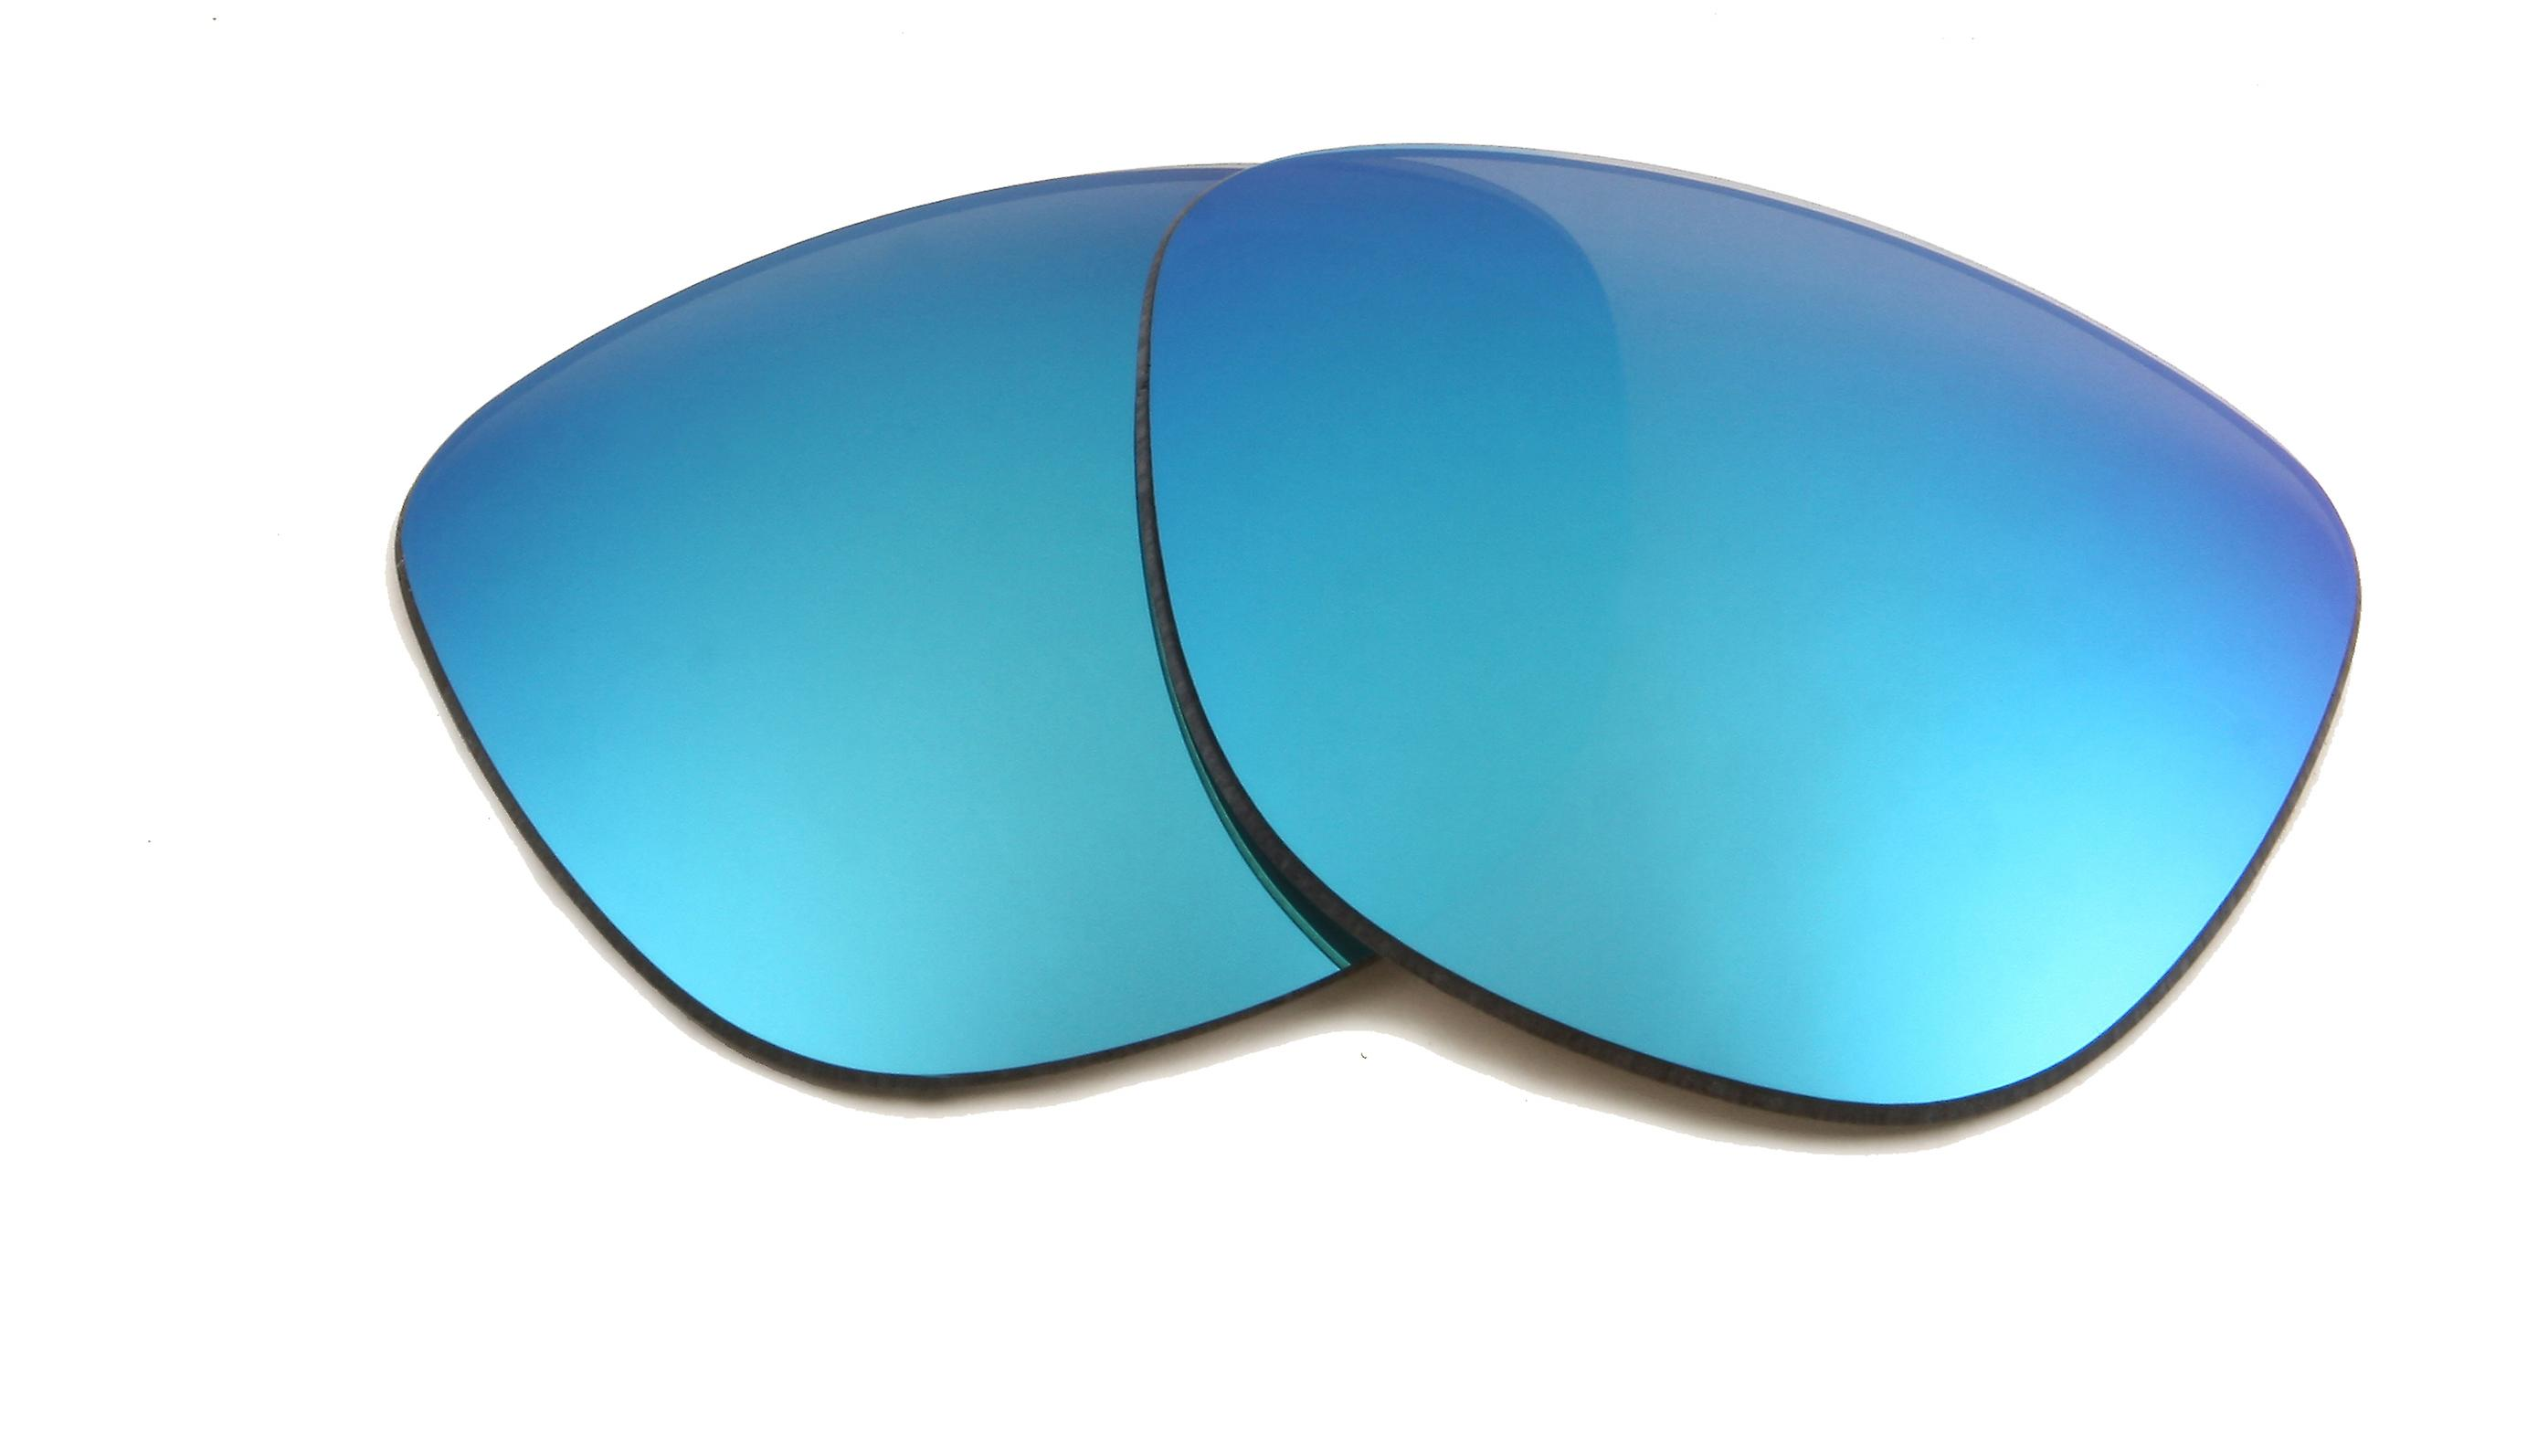 0907681c719 Frogskins Replacement Lenses Crystal Clear   Blue by SEEK fits OAKLEY  Sunglasses